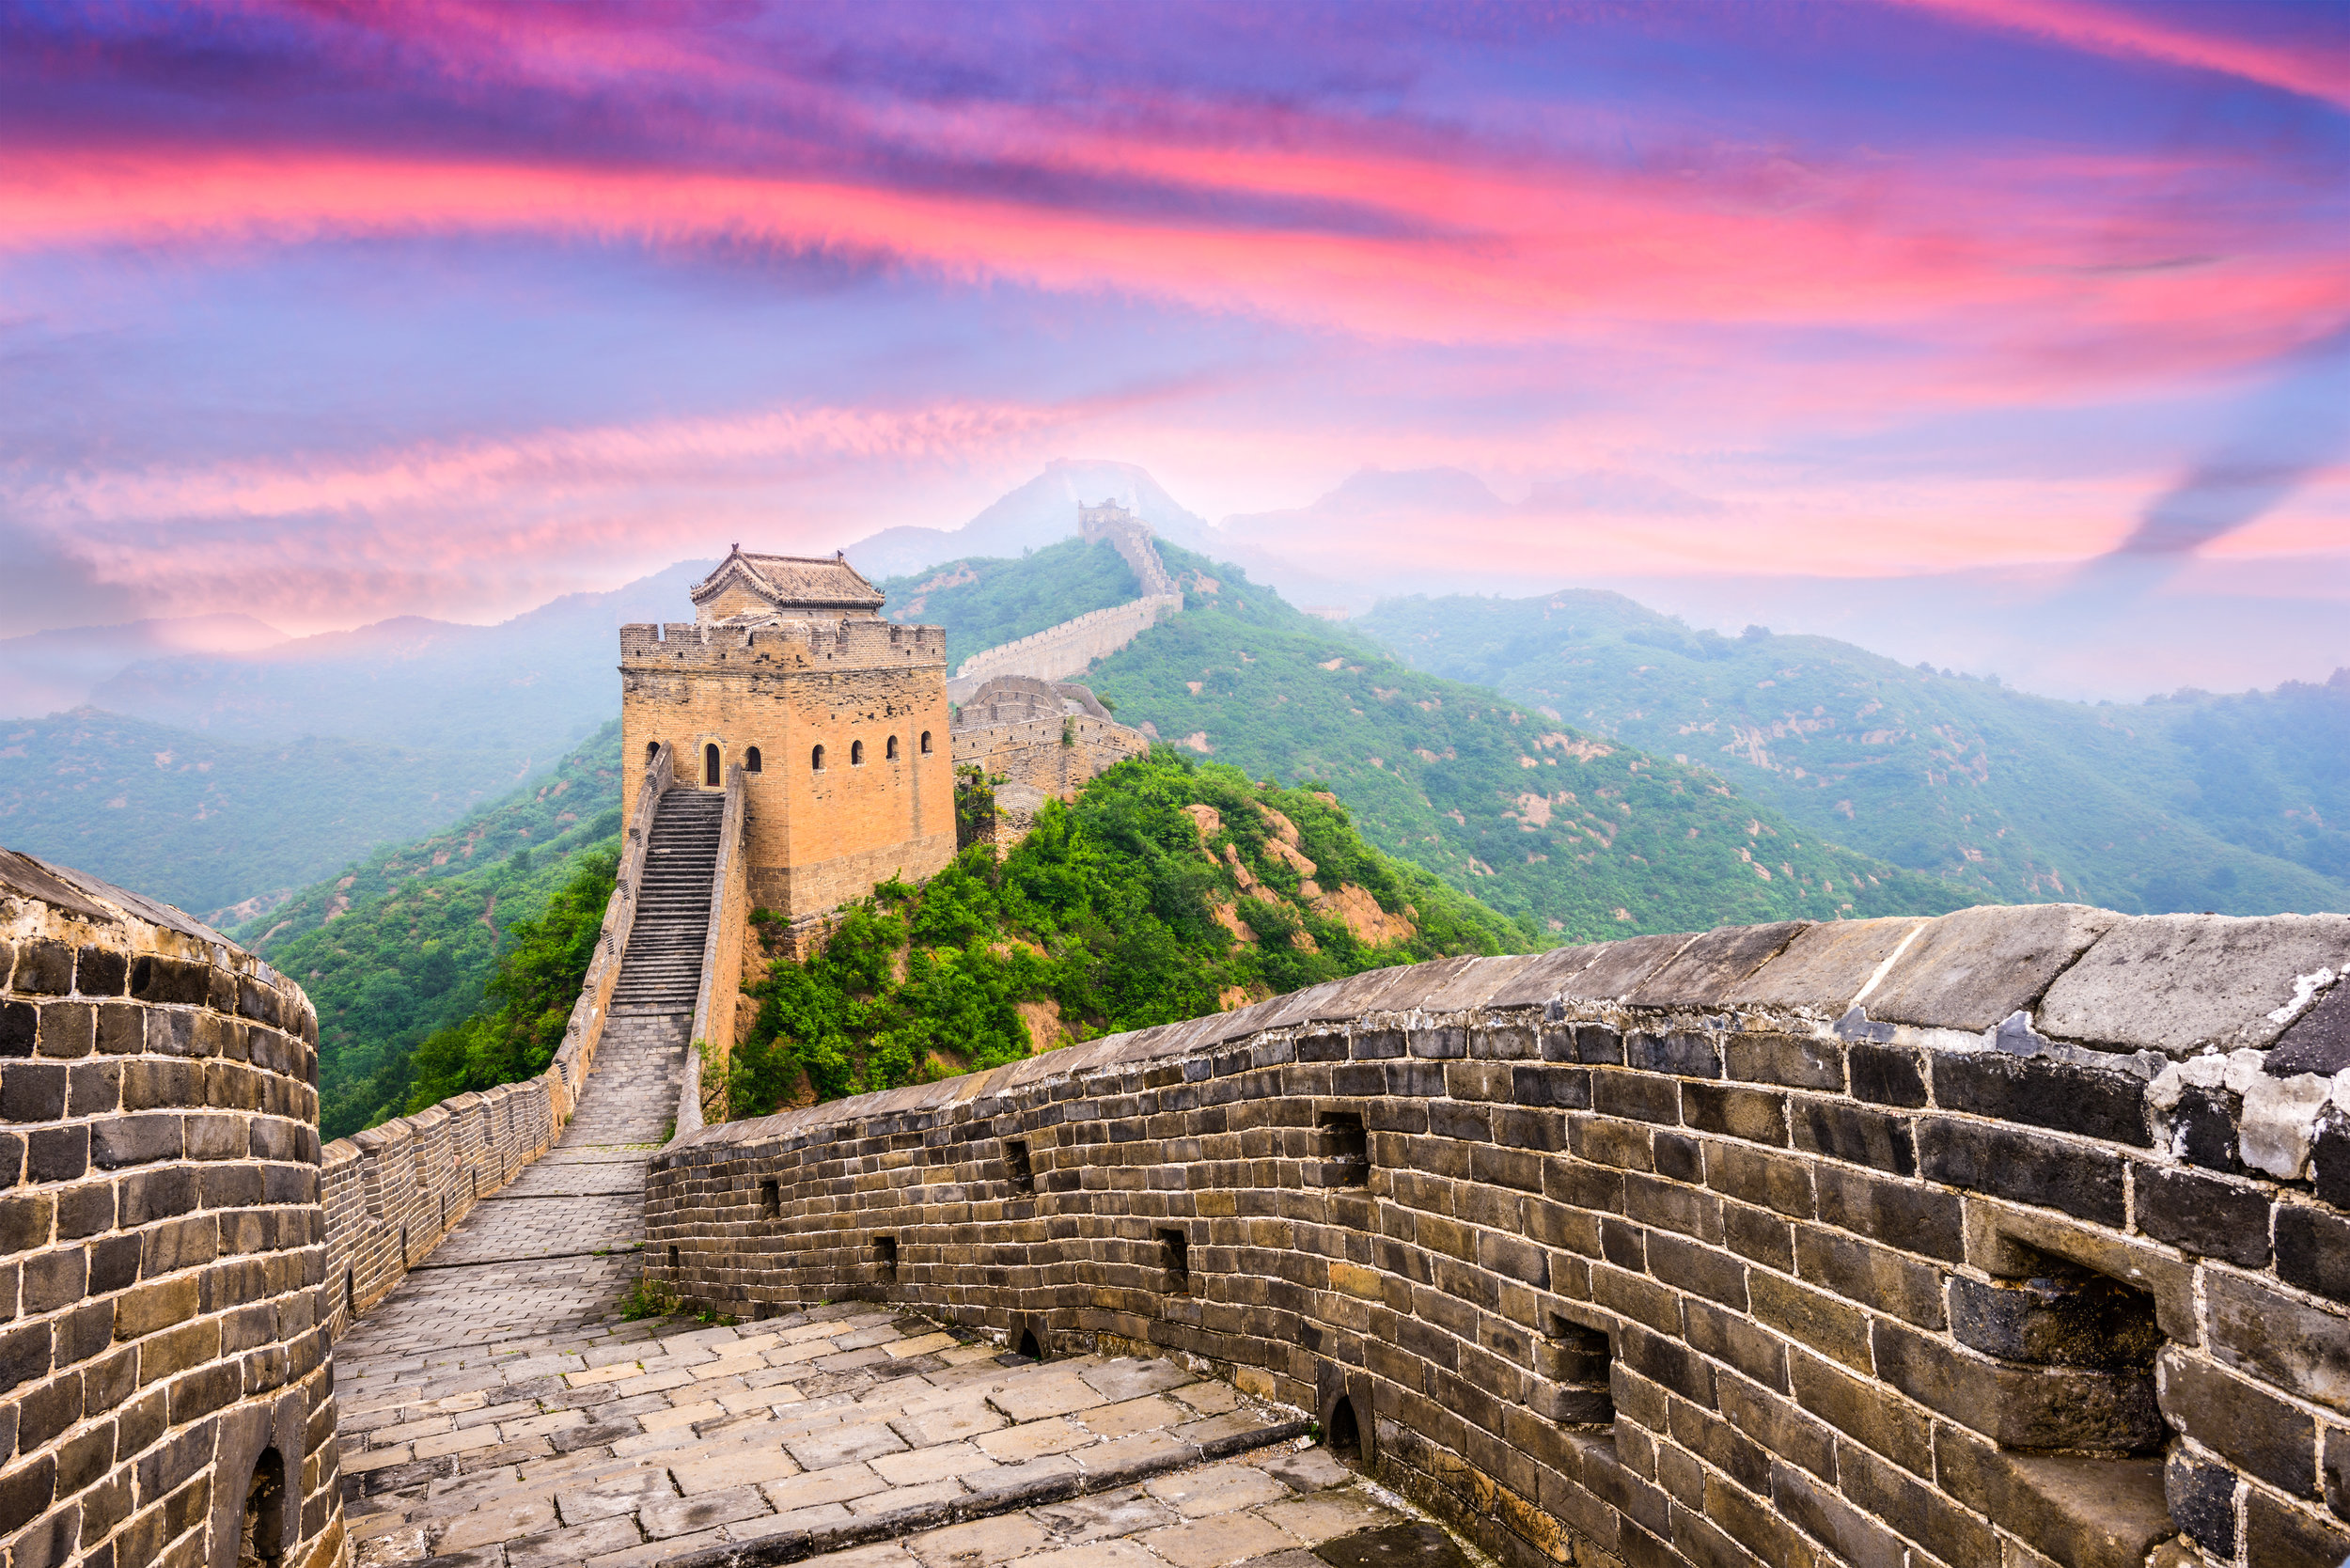 Great Wall of China shutterstock_363803066.jpg